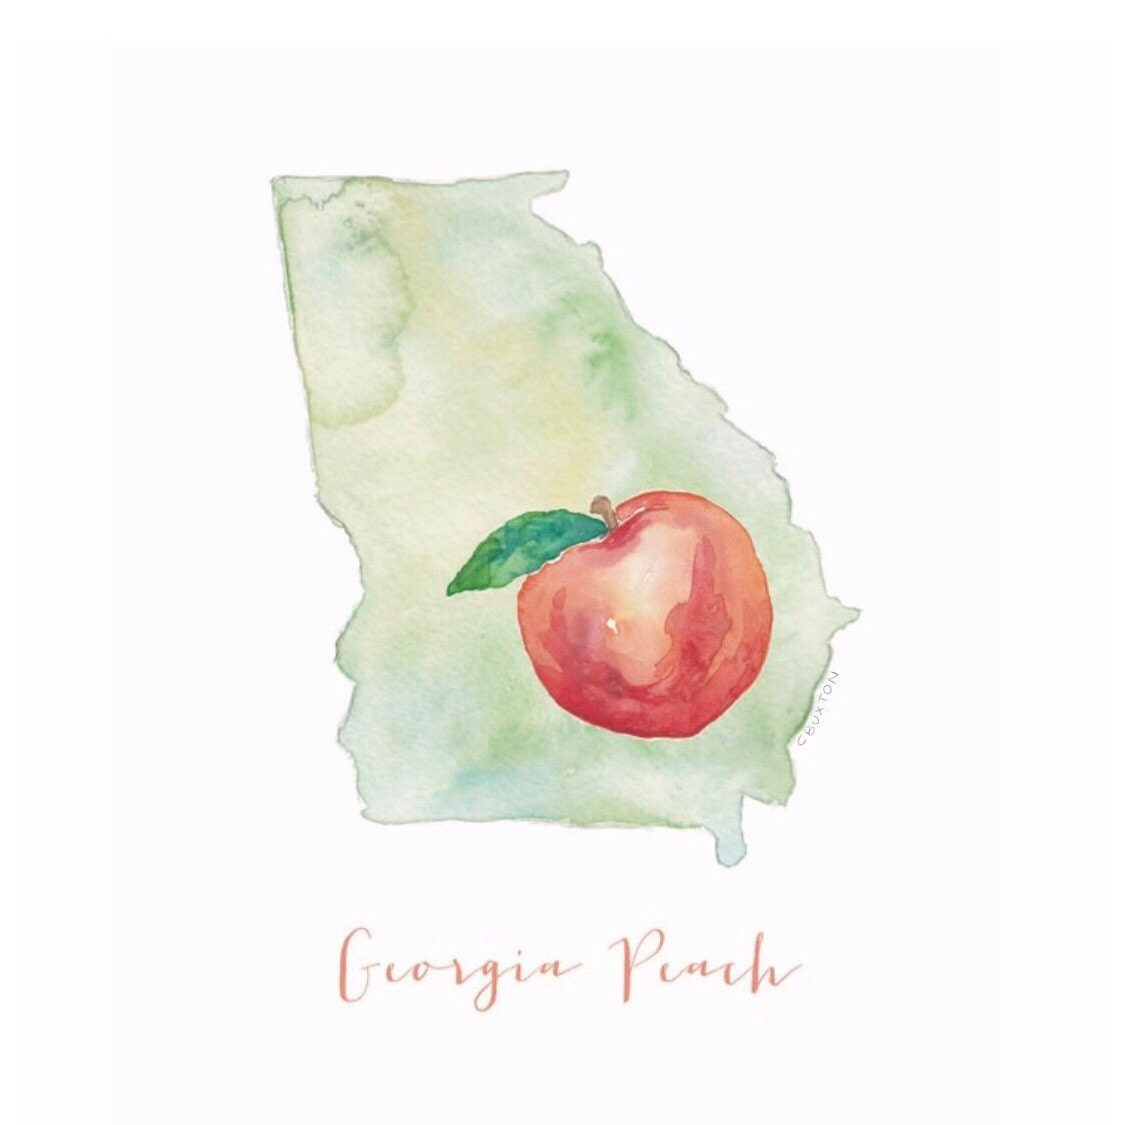 Georgia Peach Print matted and ready to be framed in a standard 11 x ...